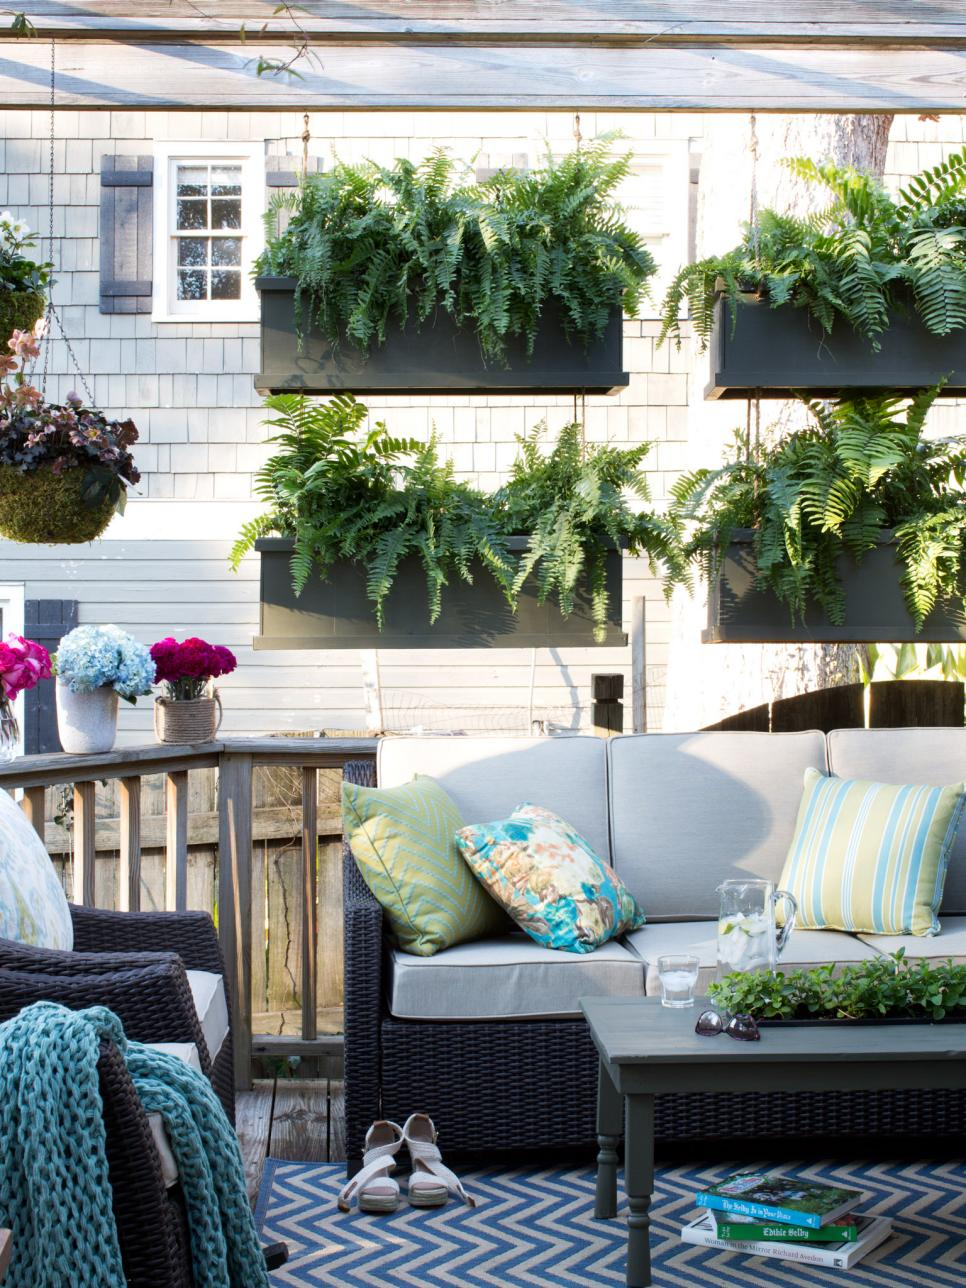 outdoor living space hgtv spring house 2014 .jpeg